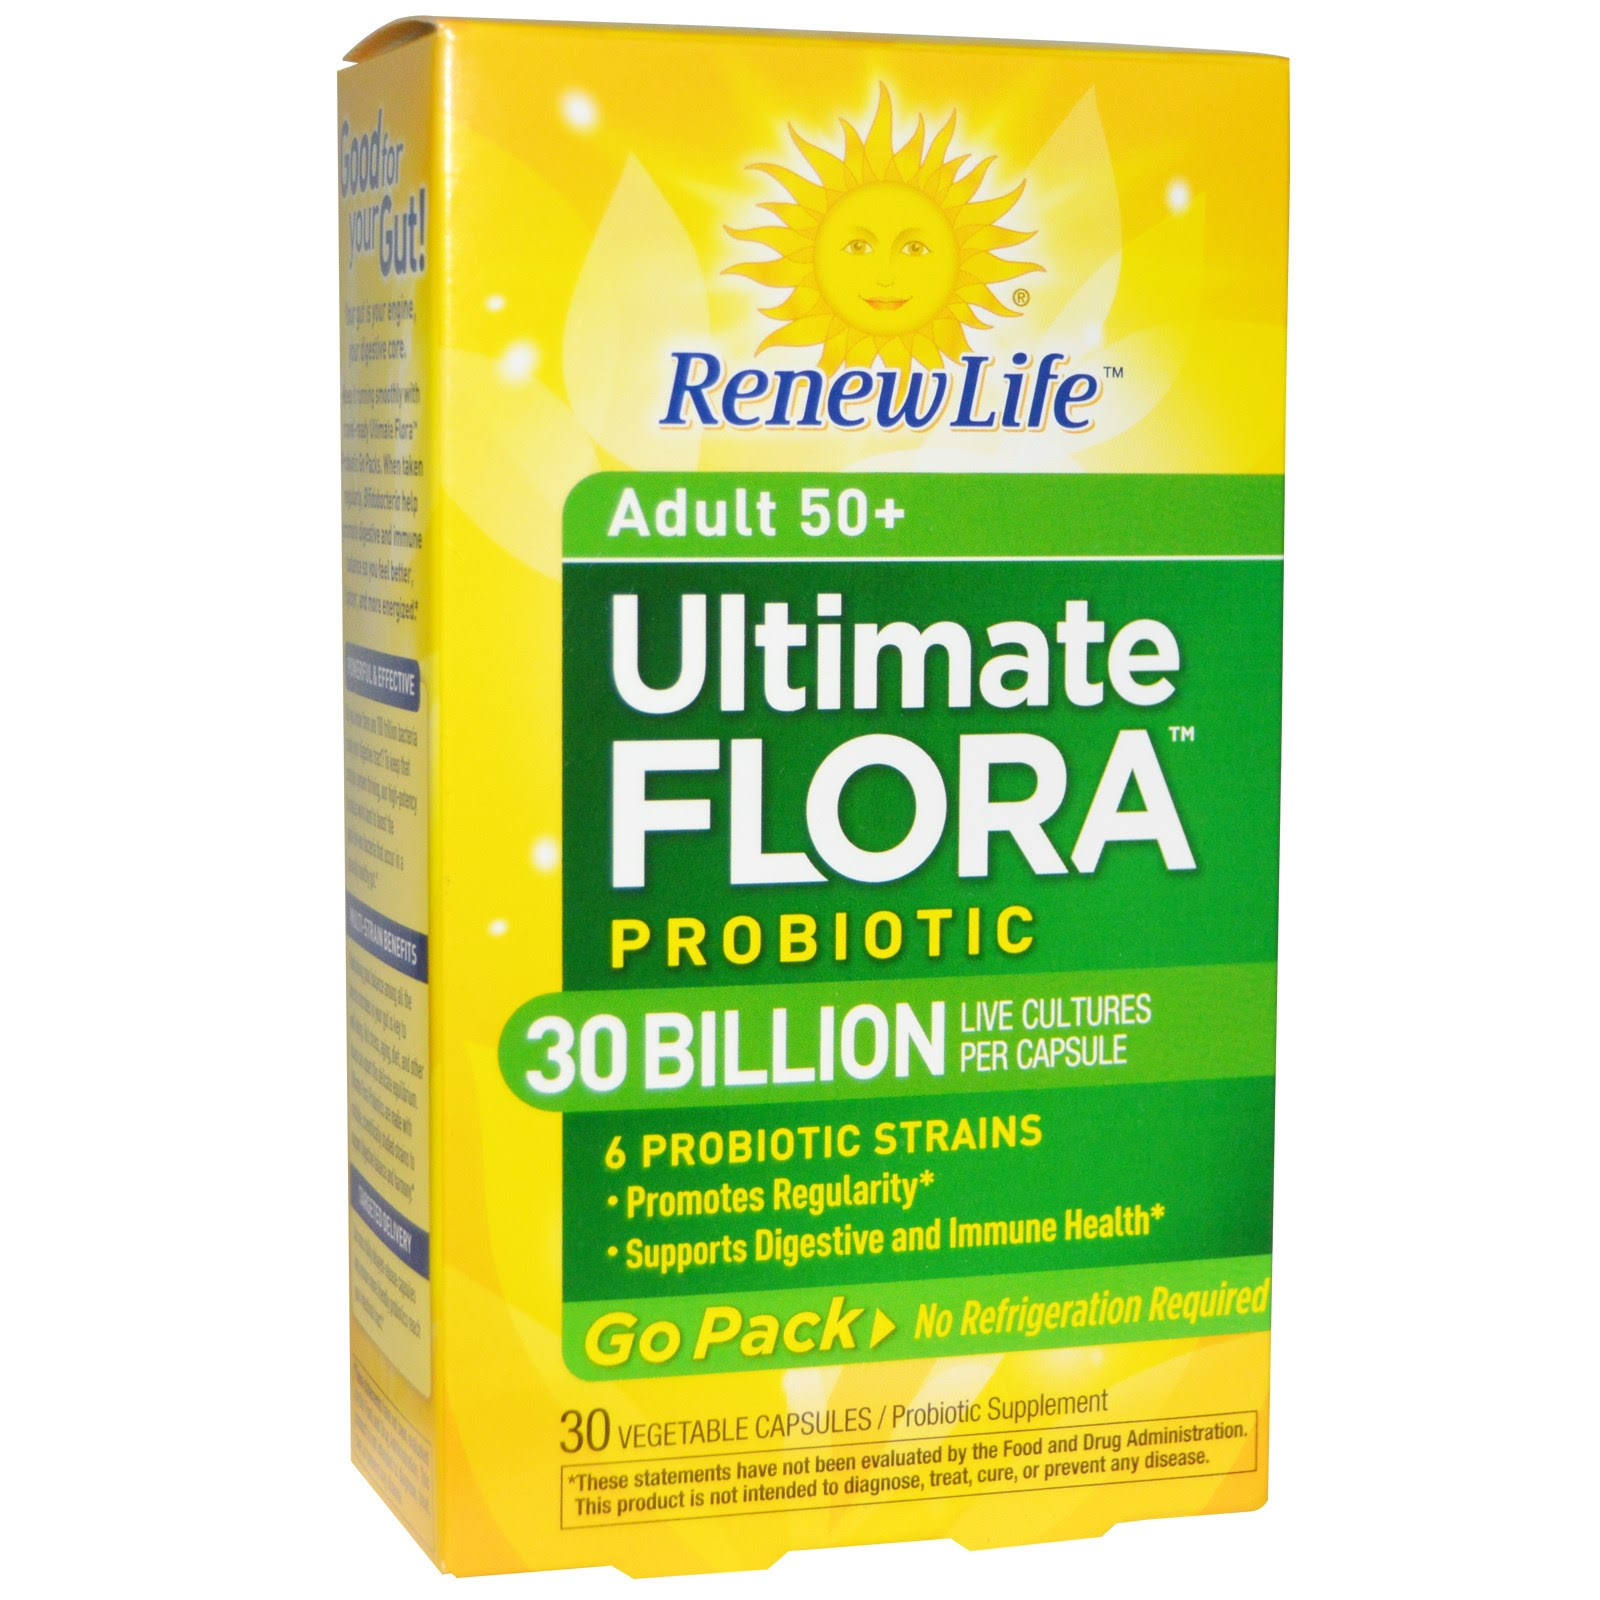 Renew Life Ultimate Flora Rts Senior Care Probiotic - 30 Vegetable Capsules